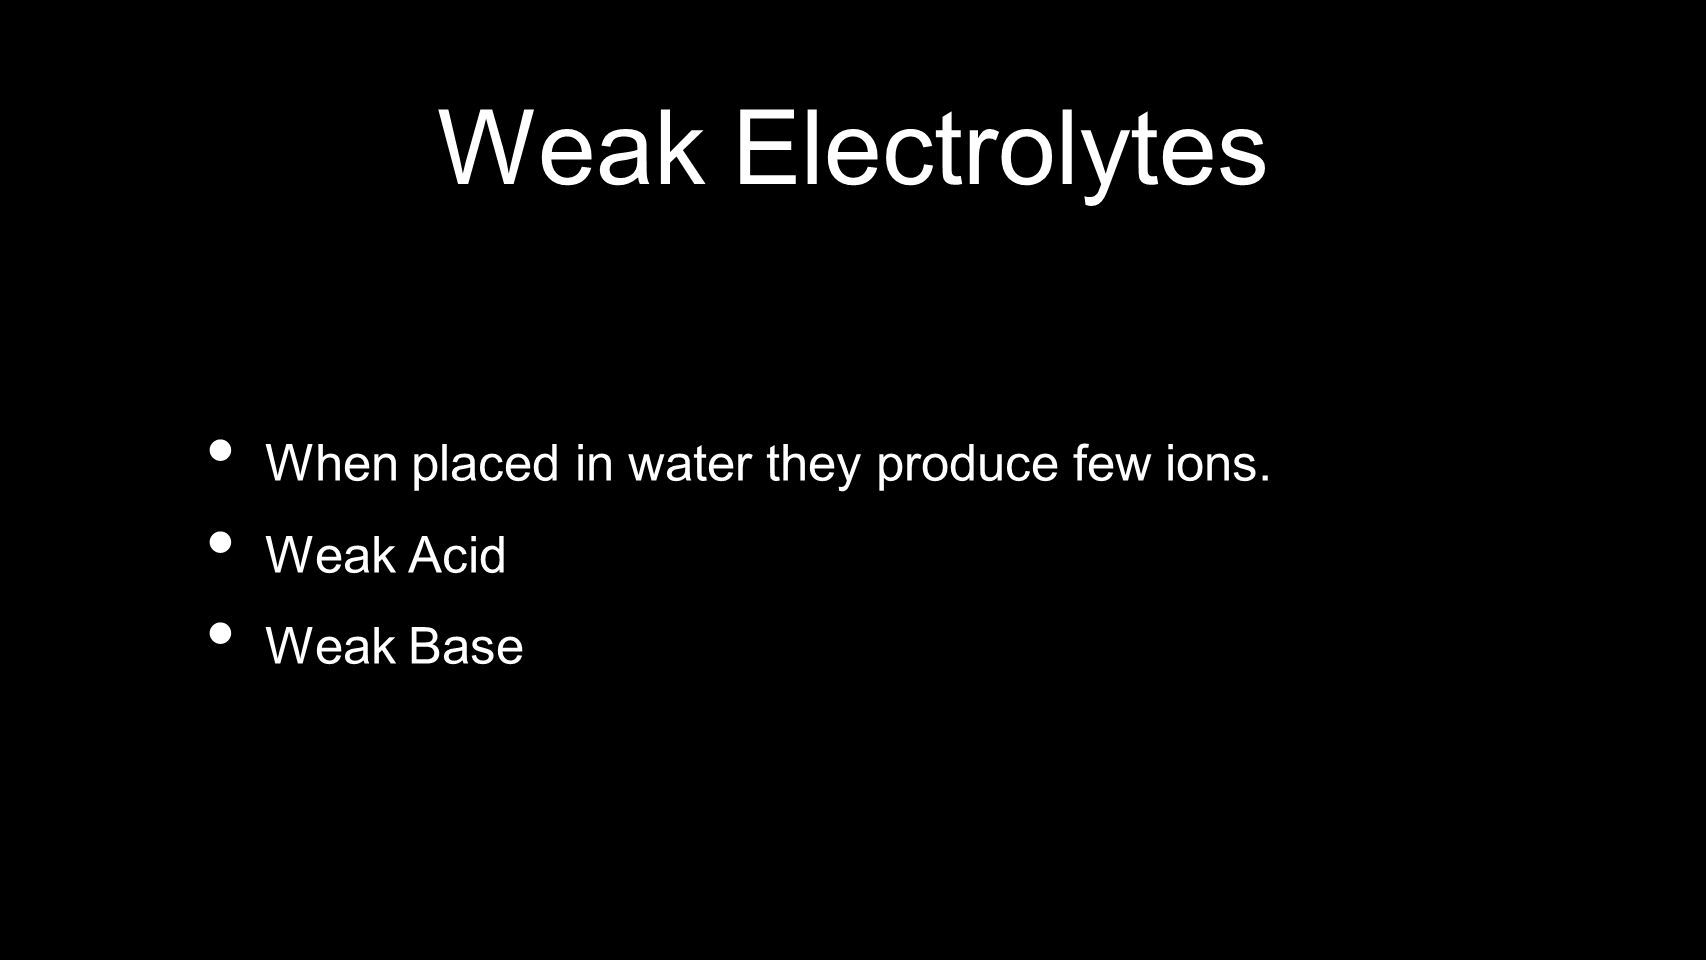 Weak Electrolytes When placed in water they produce few ions.